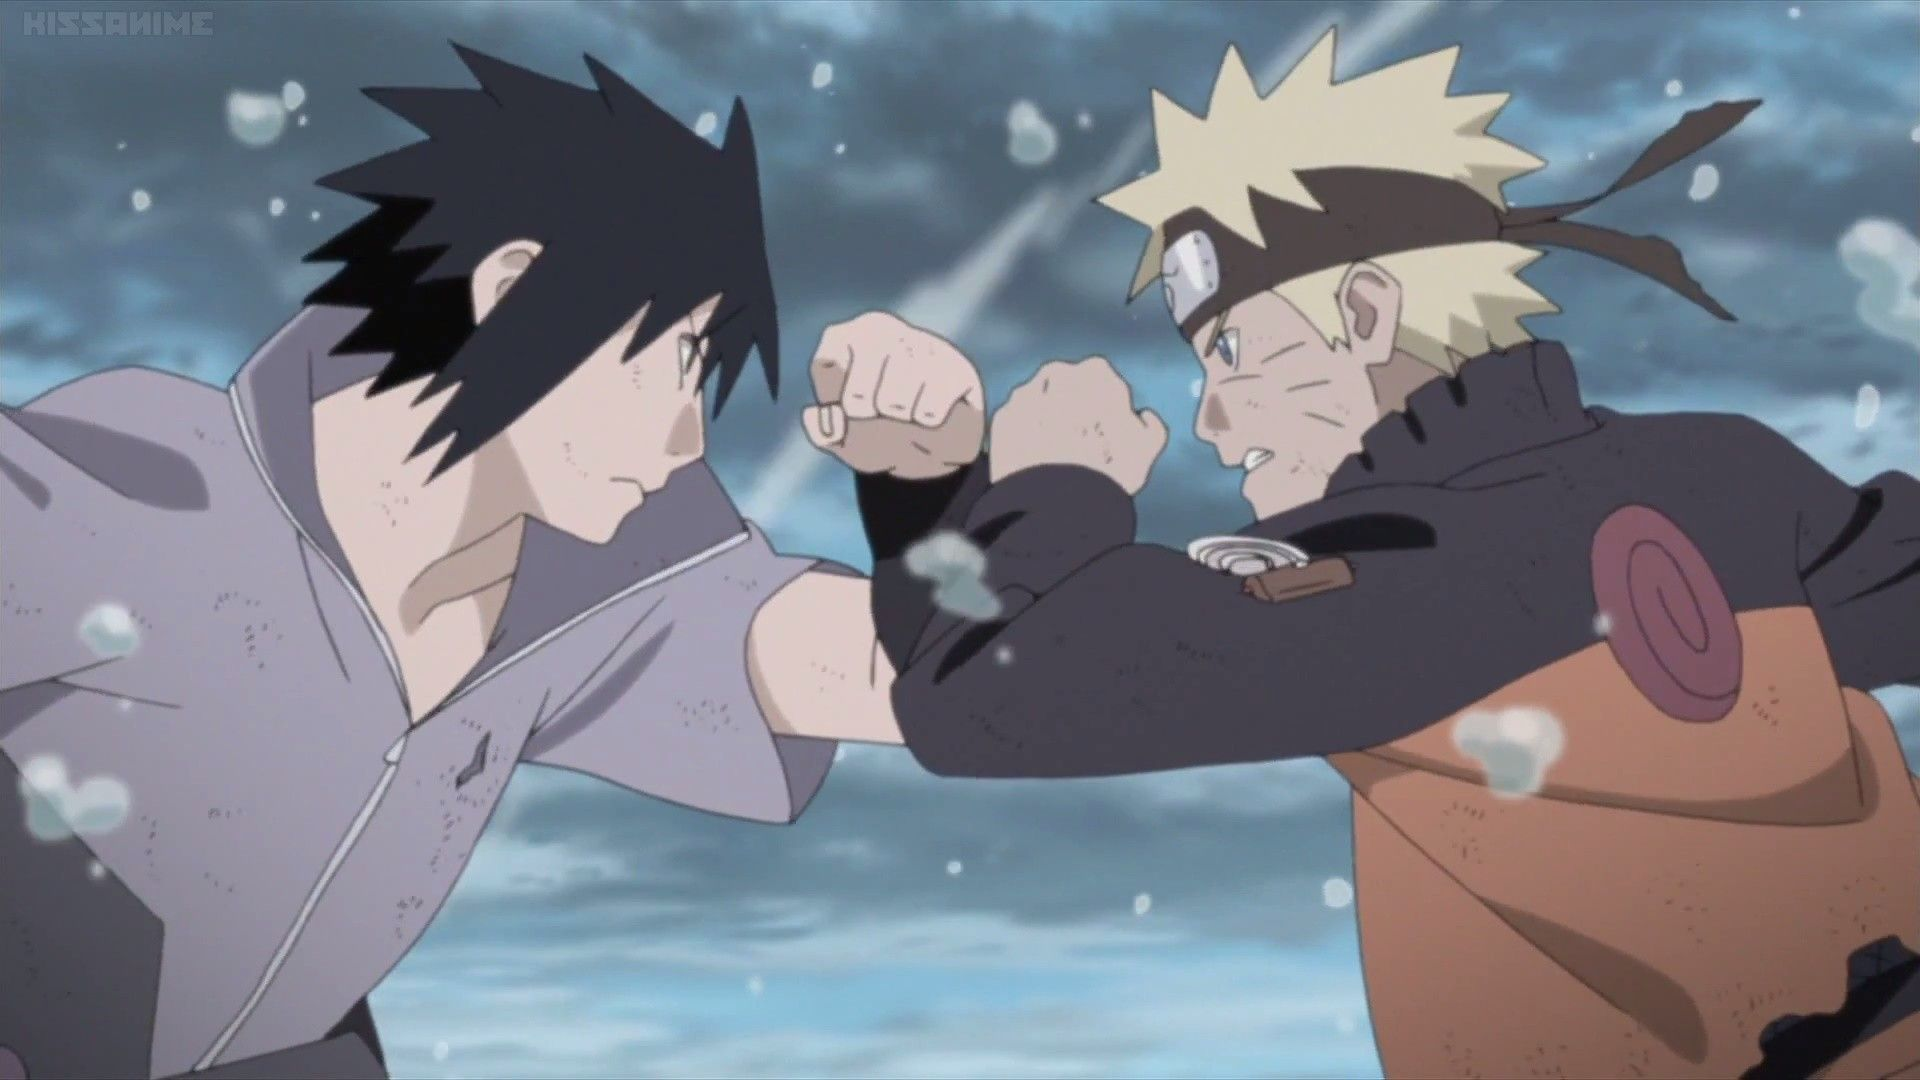 Naruto Aesthetic Wallpapers Top Free Naruto Aesthetic Backgrounds Wallpaperaccess